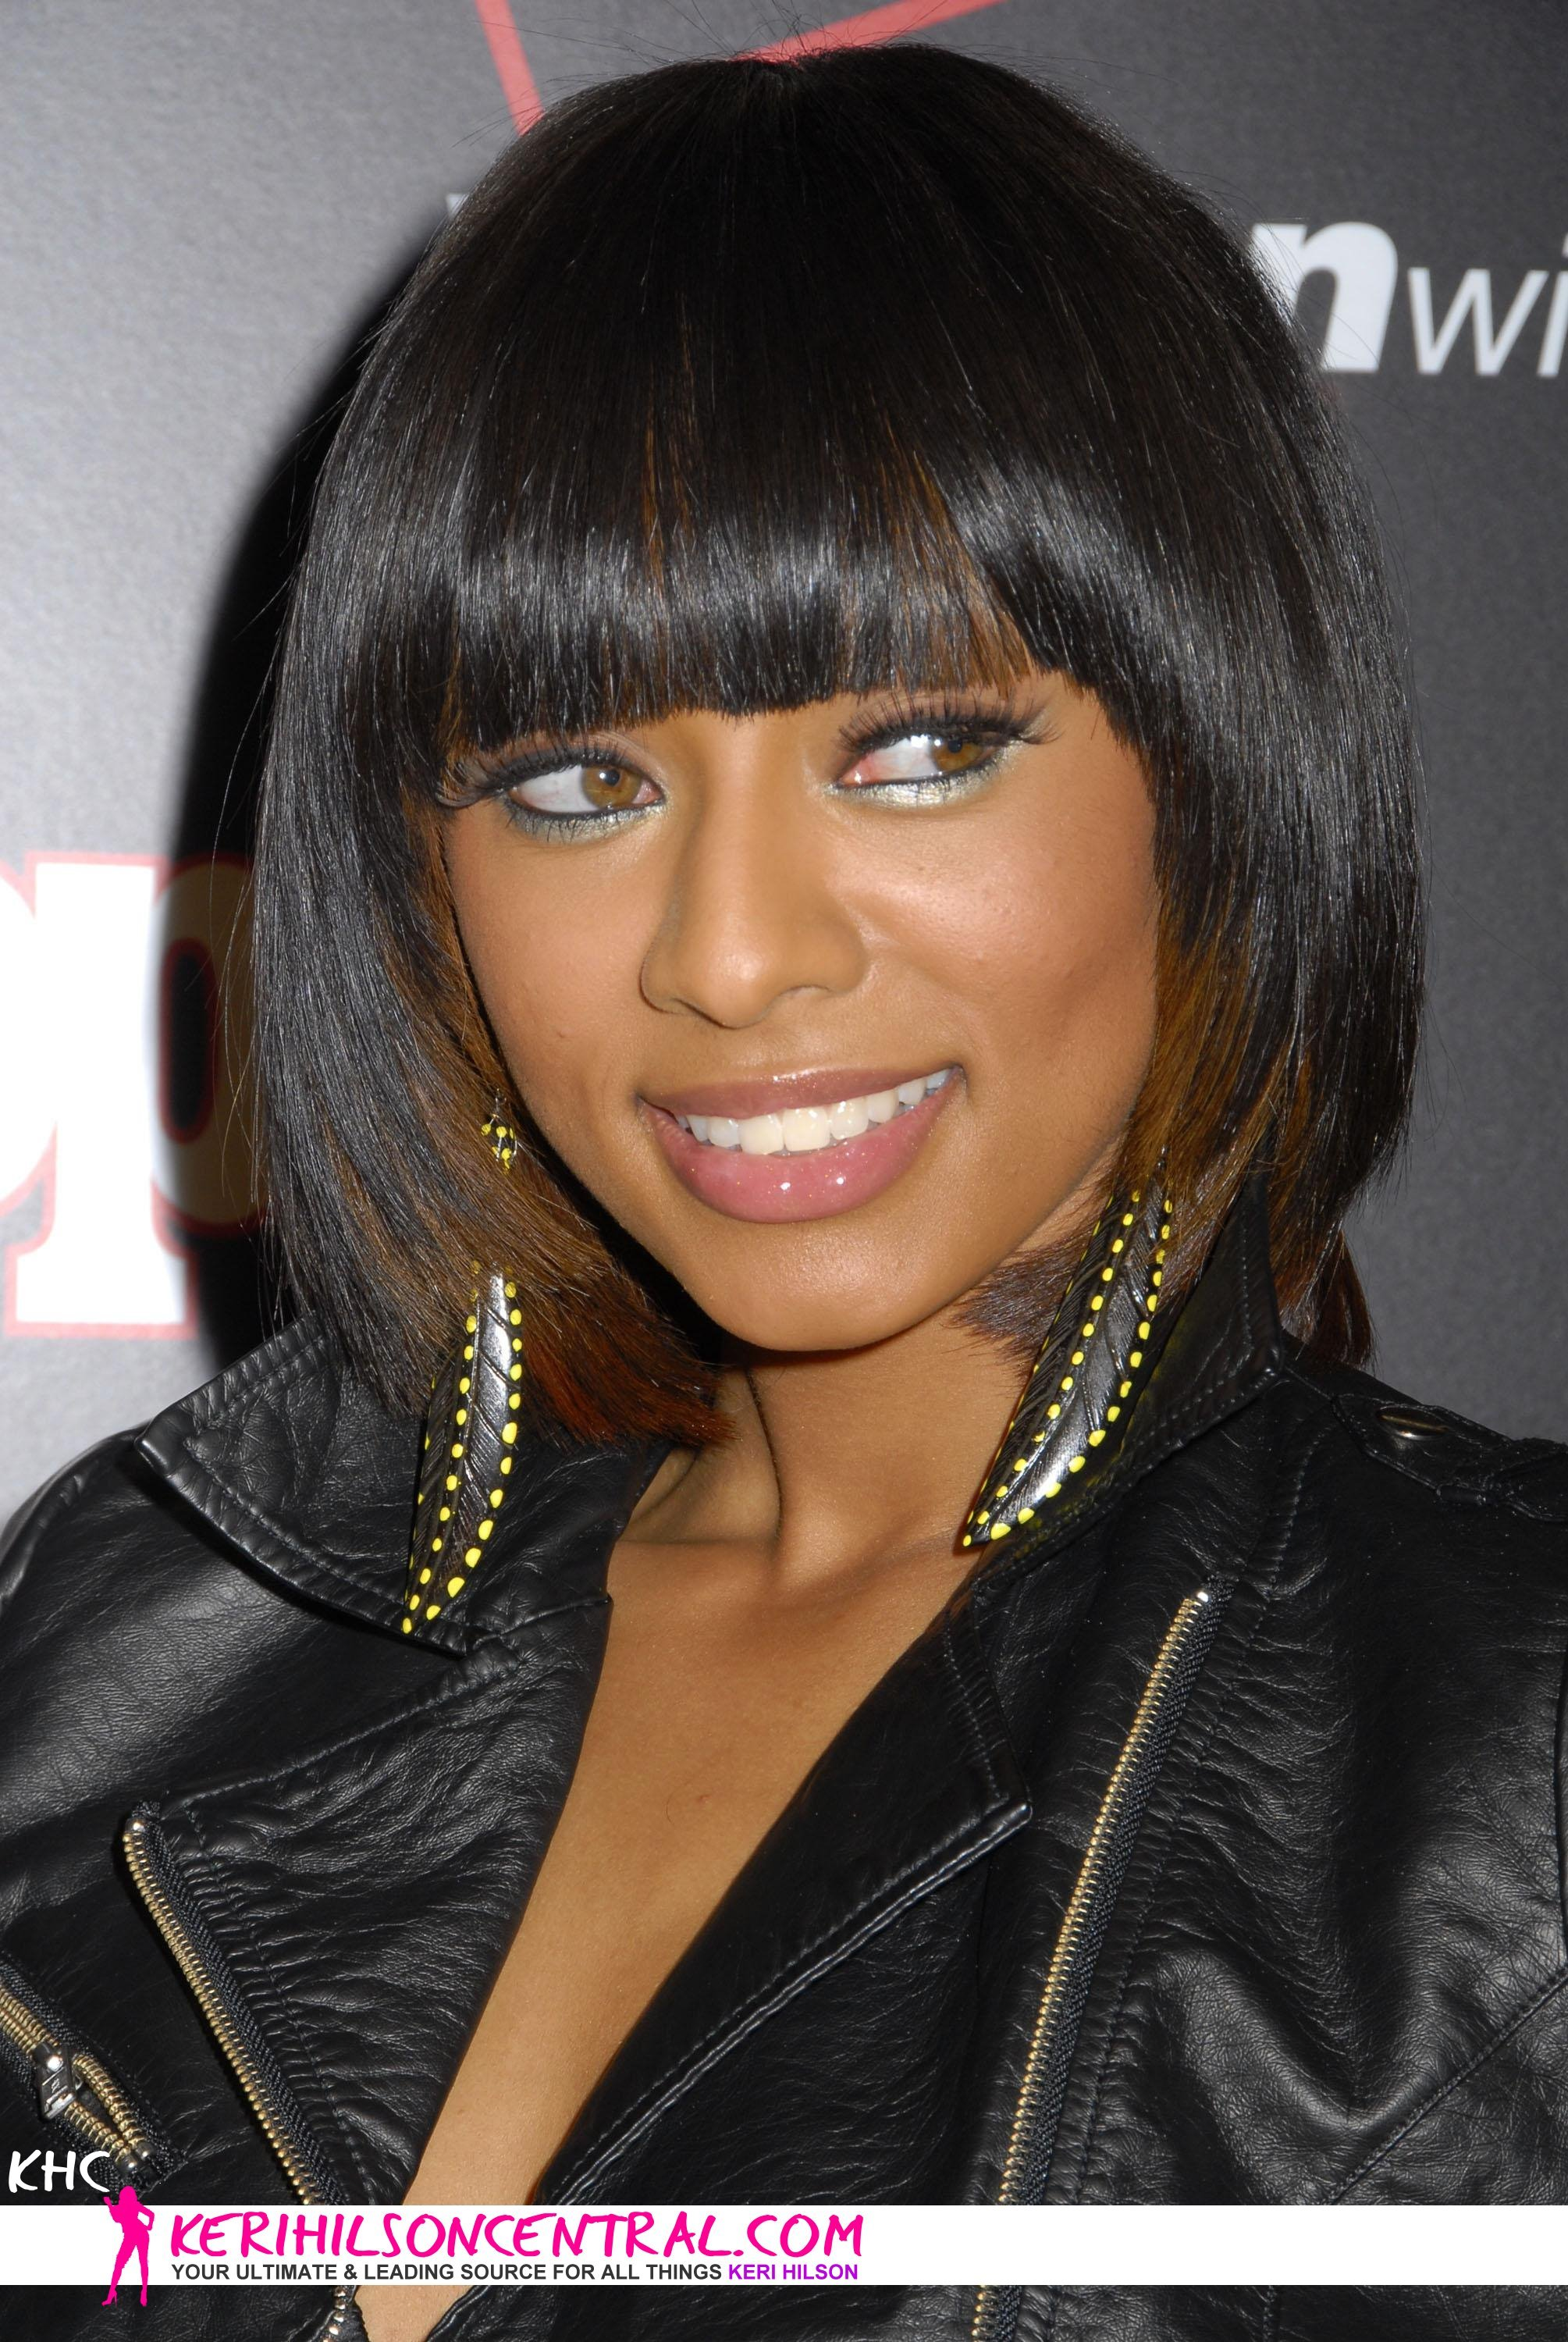 Keri Hilson - Picture Actress